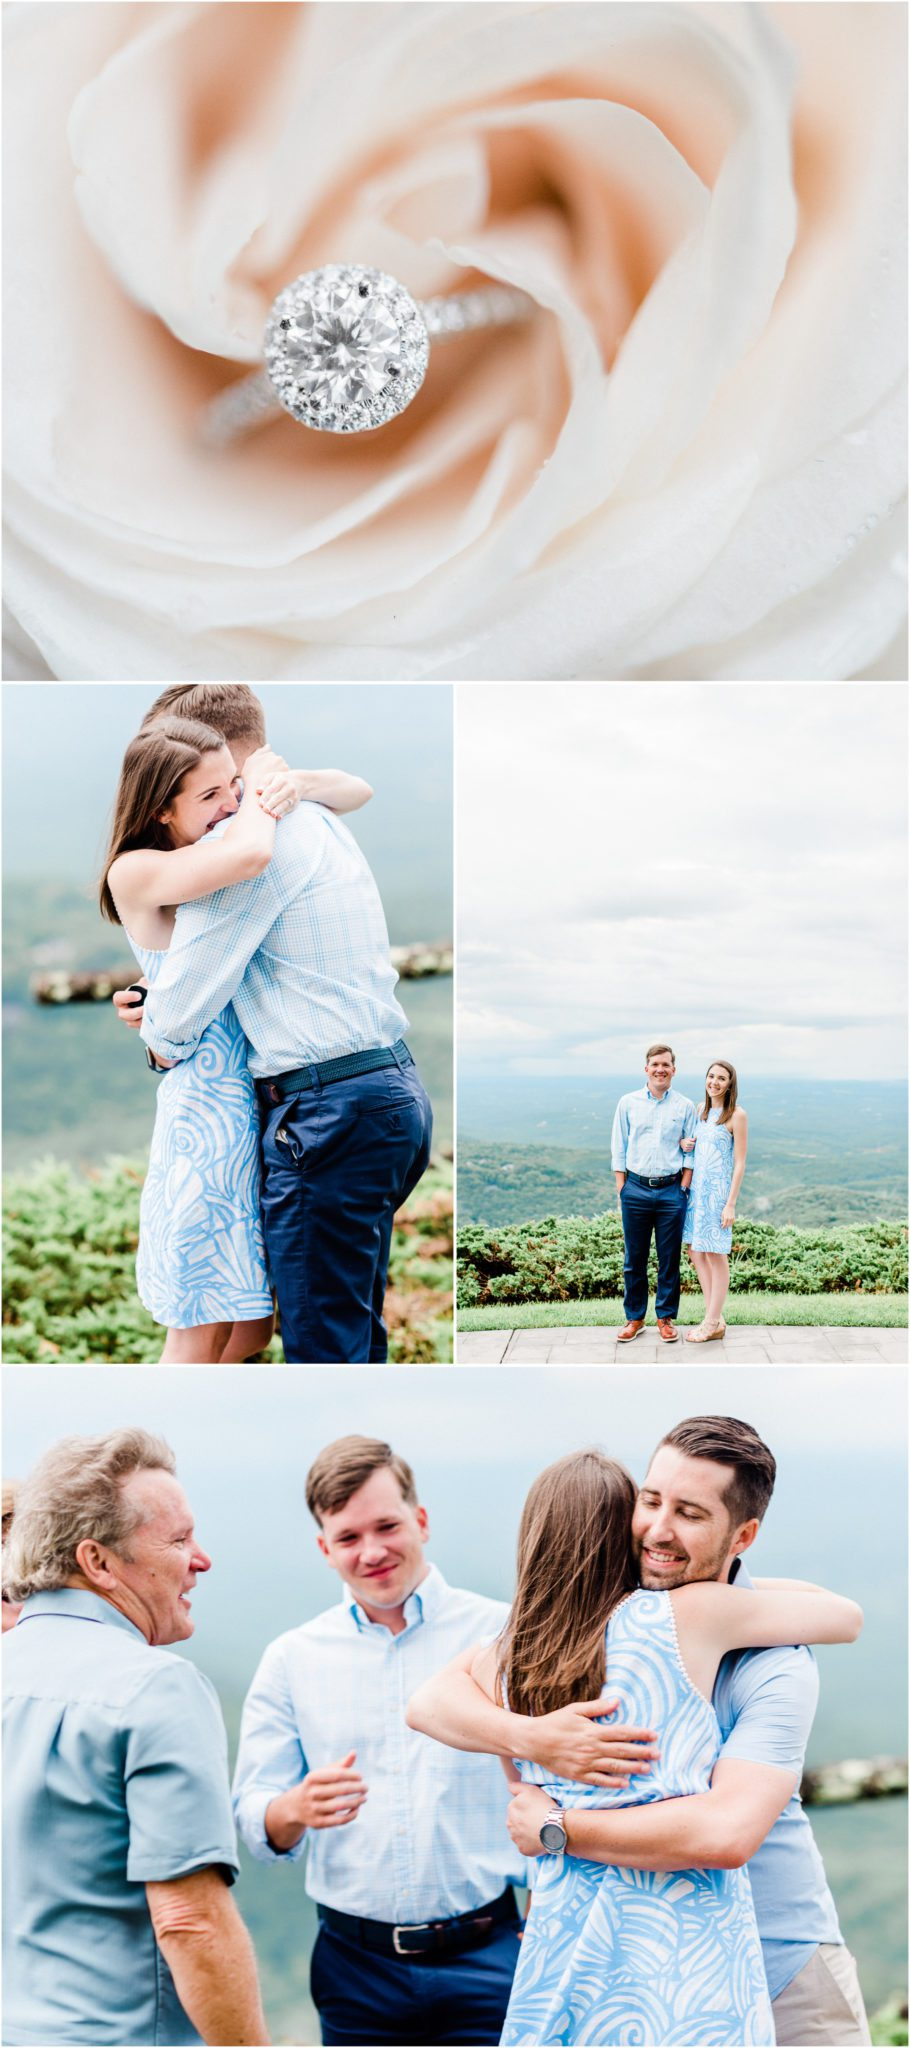 Glassy Chapel Family Session at the Cliffs in Landrum, South Carolina proposal